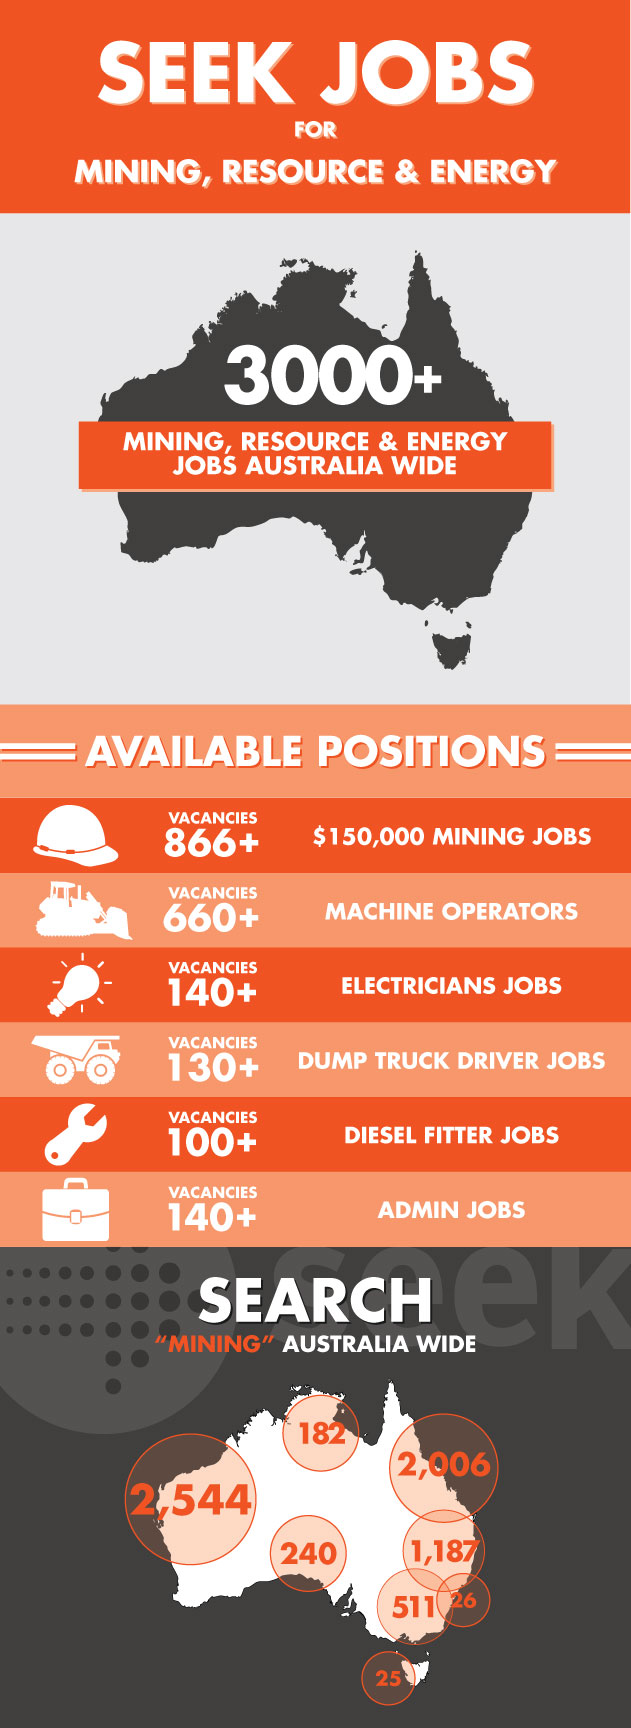 seek-jobs-mining-resource-industry-infographic-iMINCO